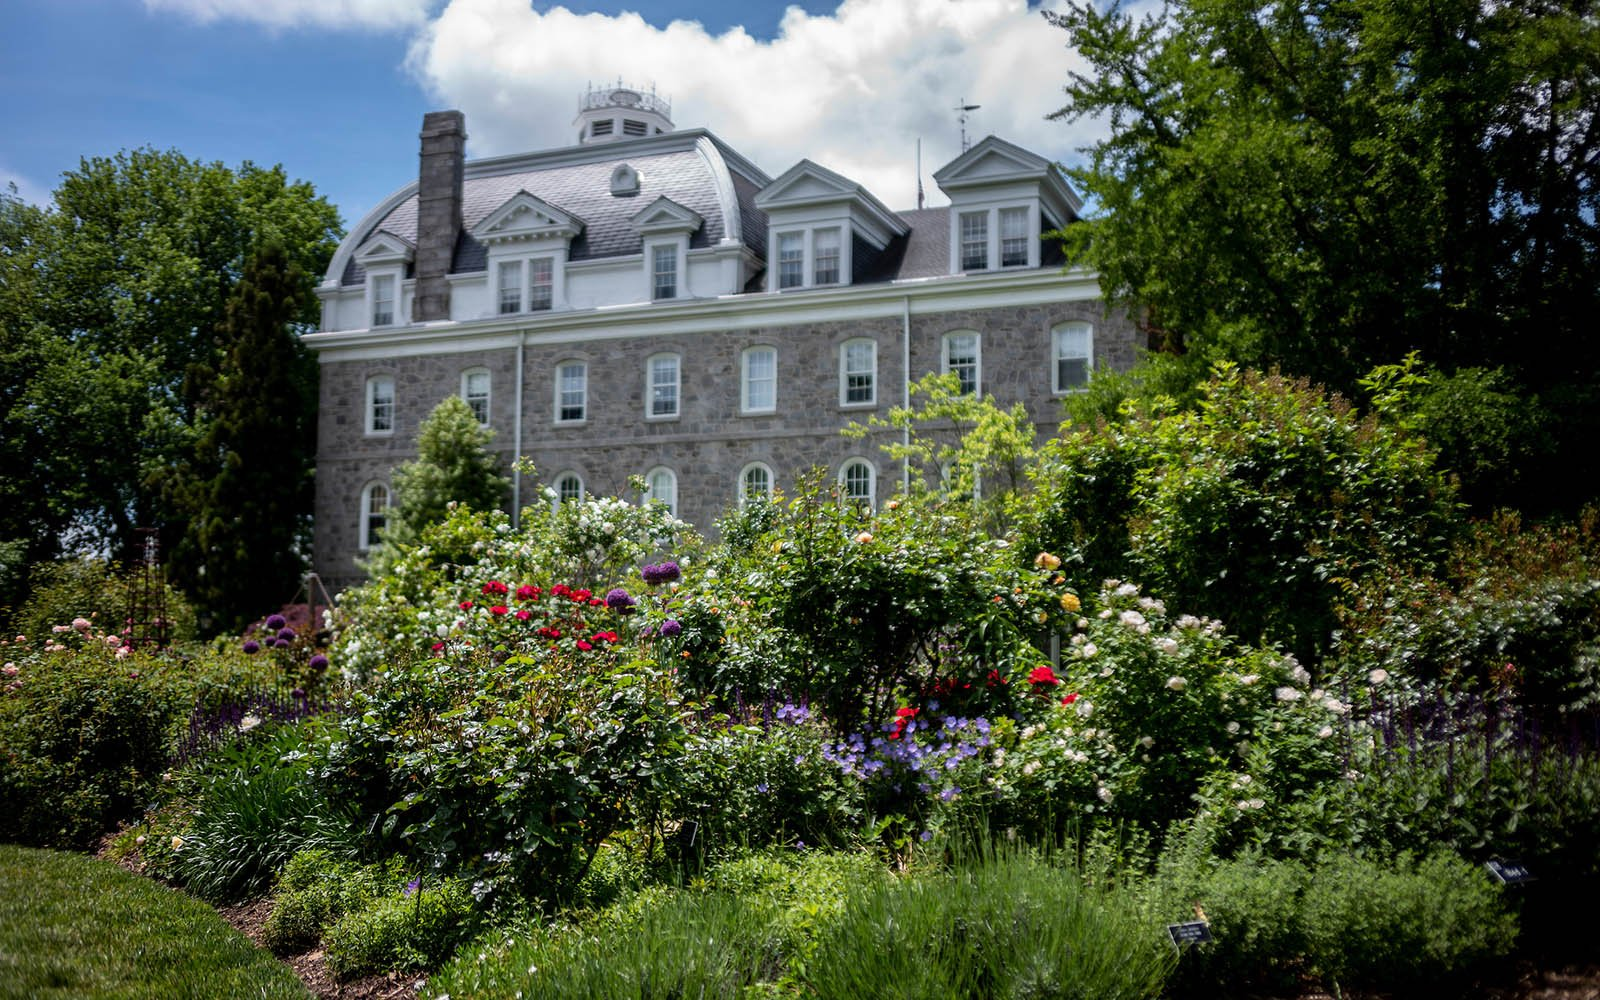 parrish hall and the rose garden